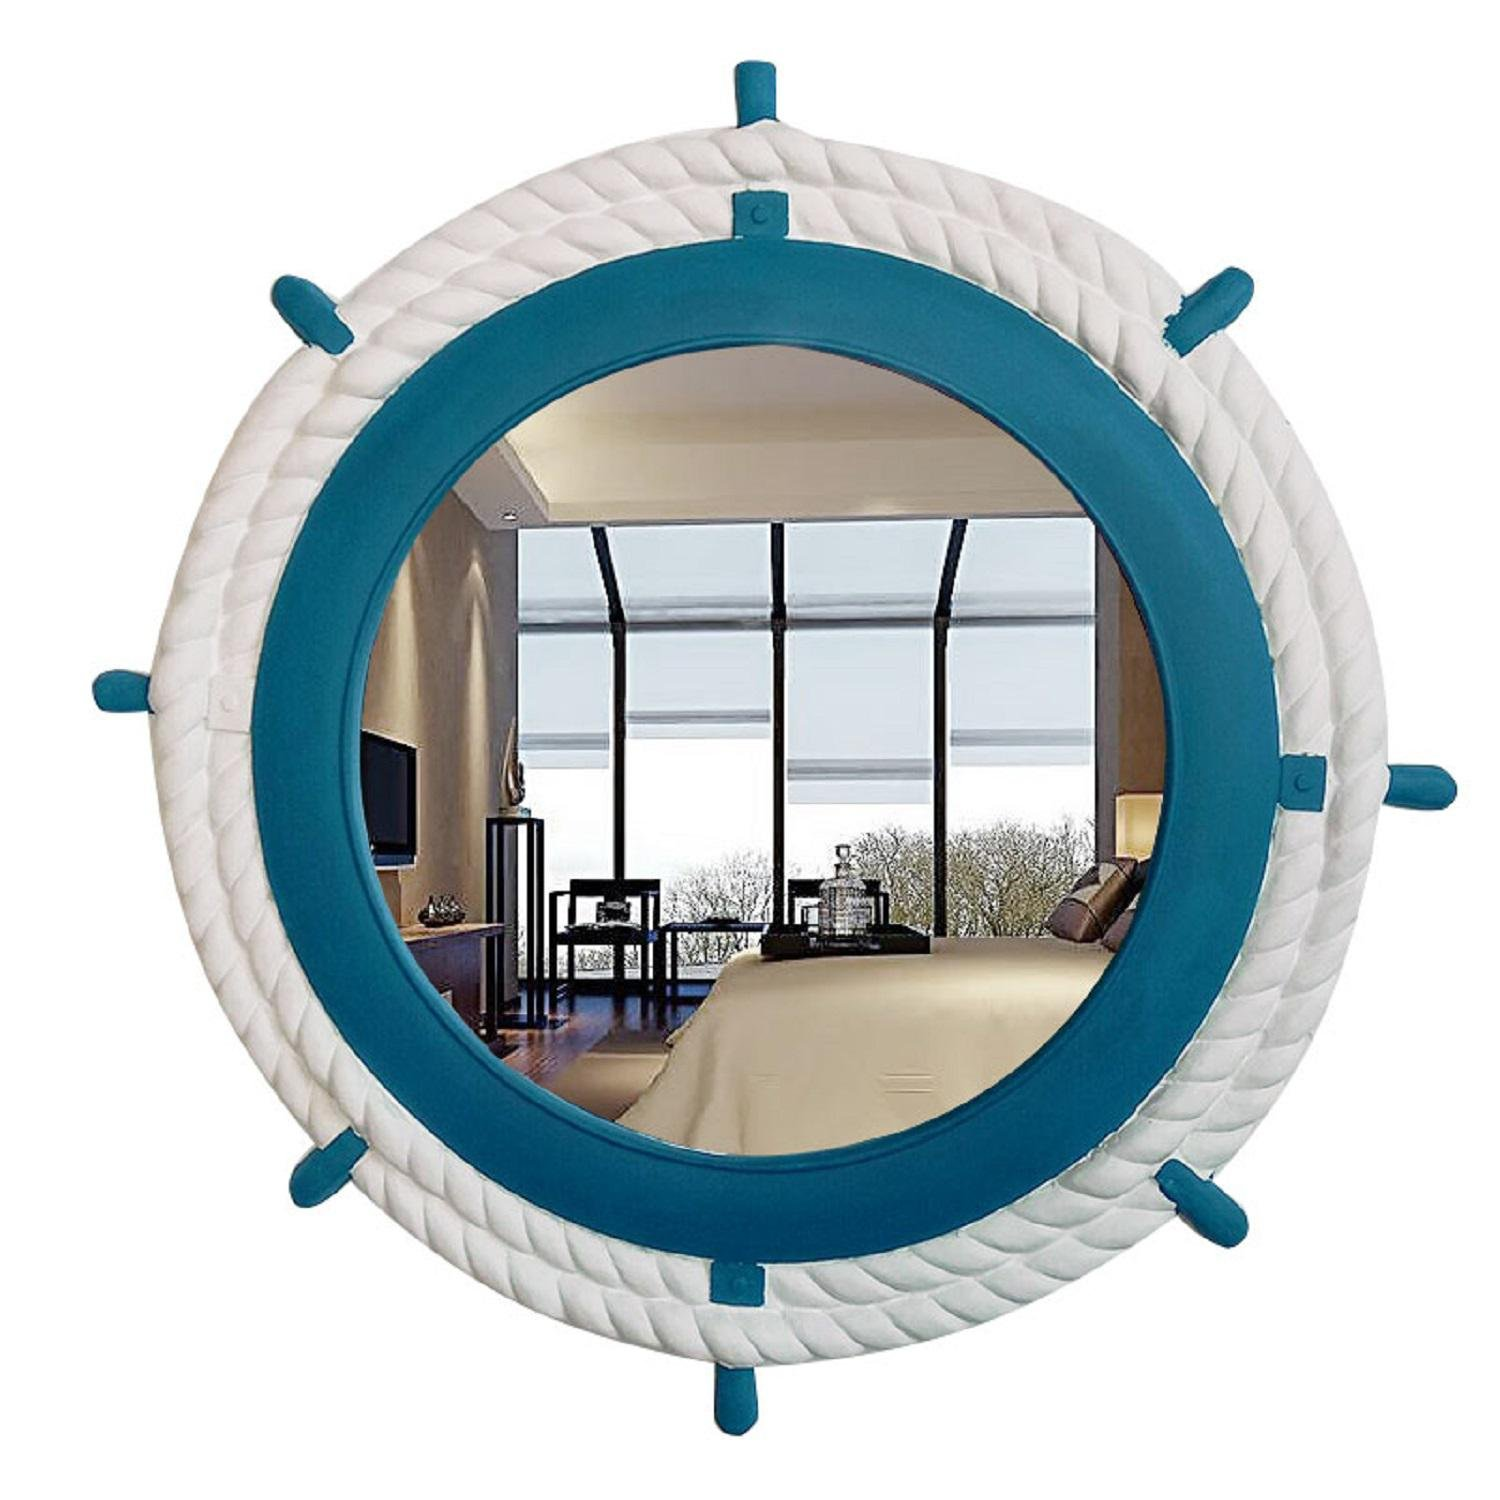 GAOJIAN European-style circular mirror decorative mirrors Wall-mounted rudder bathroom mirror Designer table mirror , d